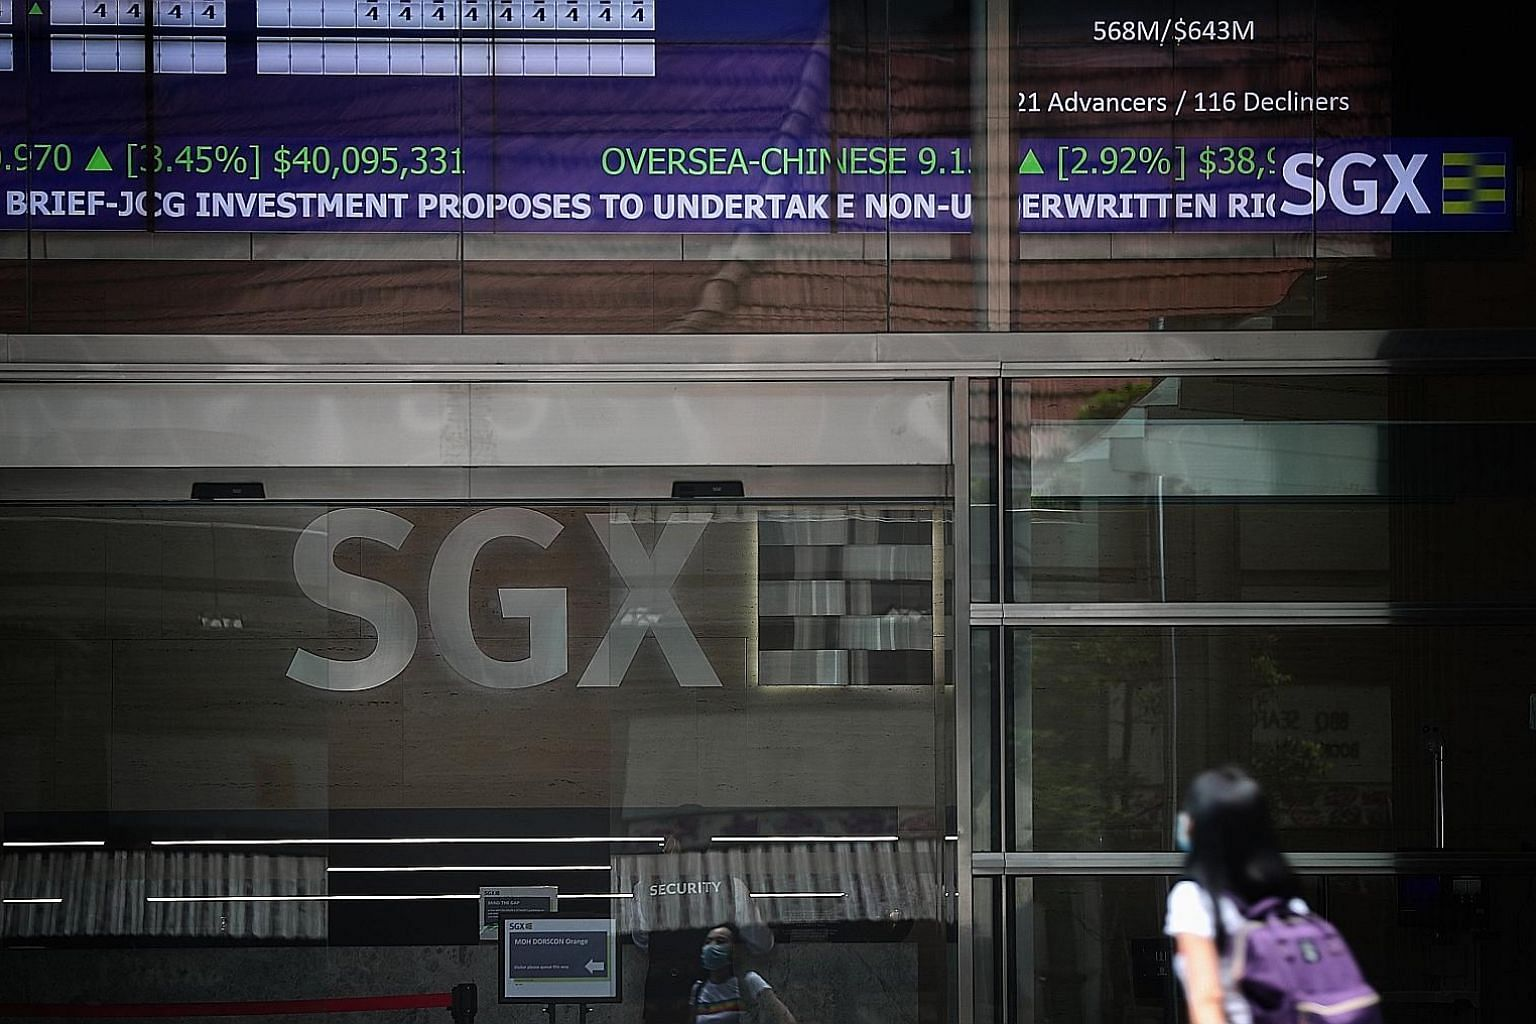 The upgrade comes after ratings for the Singapore Exchange had suffered a blow after MSCI moved its index-licensing franchise for most derivative products from Singapore to Hong Kong in late May. Multiple downgrades had left the stock with zero buys